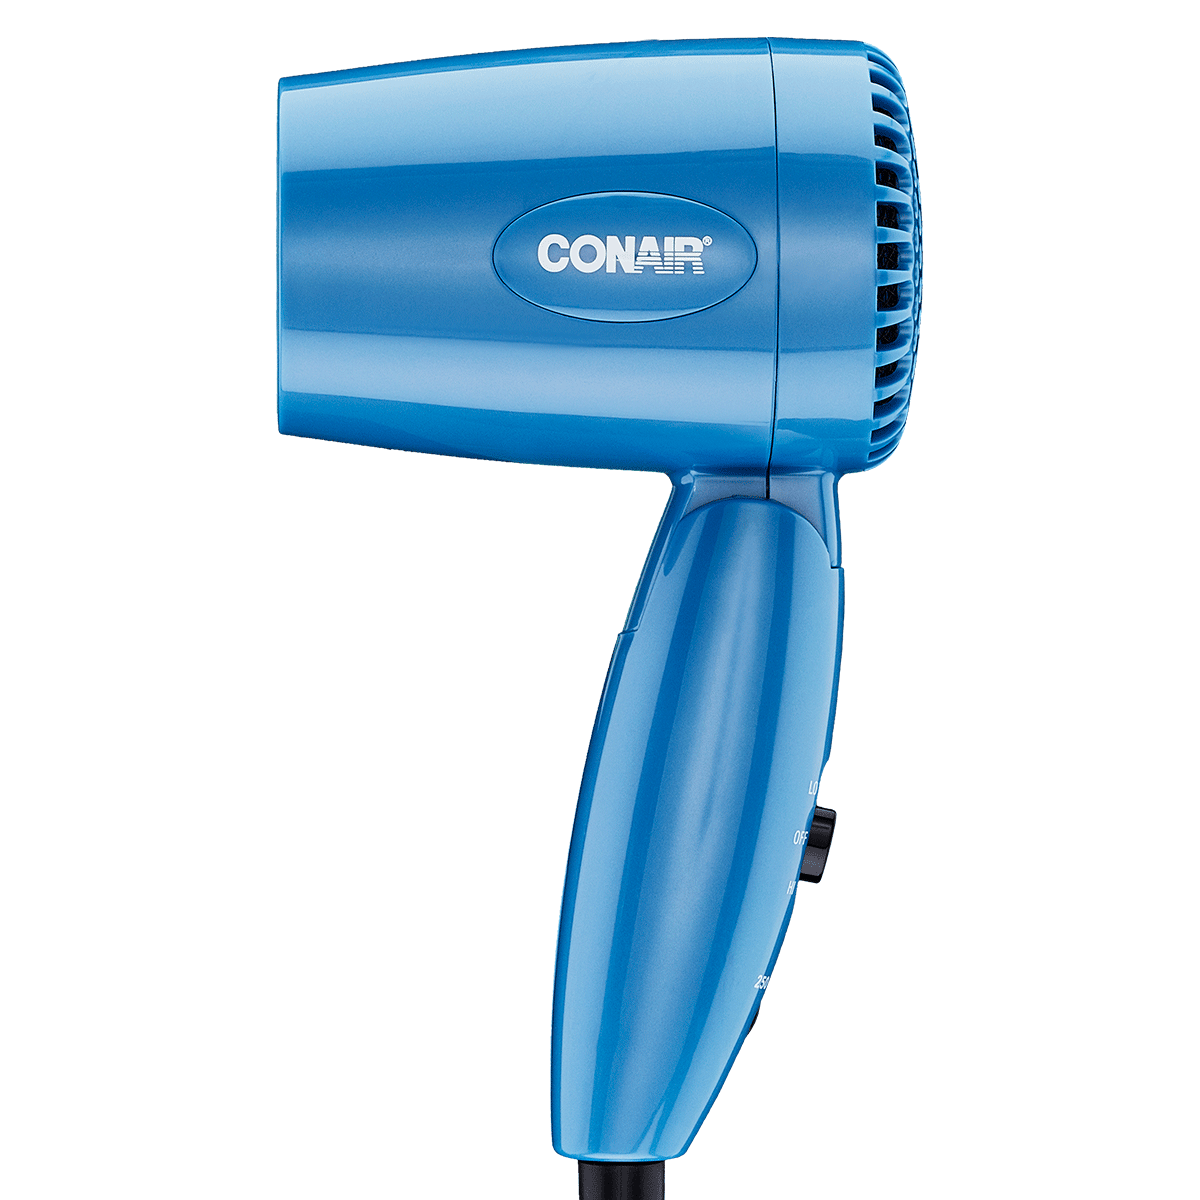 Conair 1600w Dual Volt Travel Folding Hair Dryer 110 220 For Worldwide Use